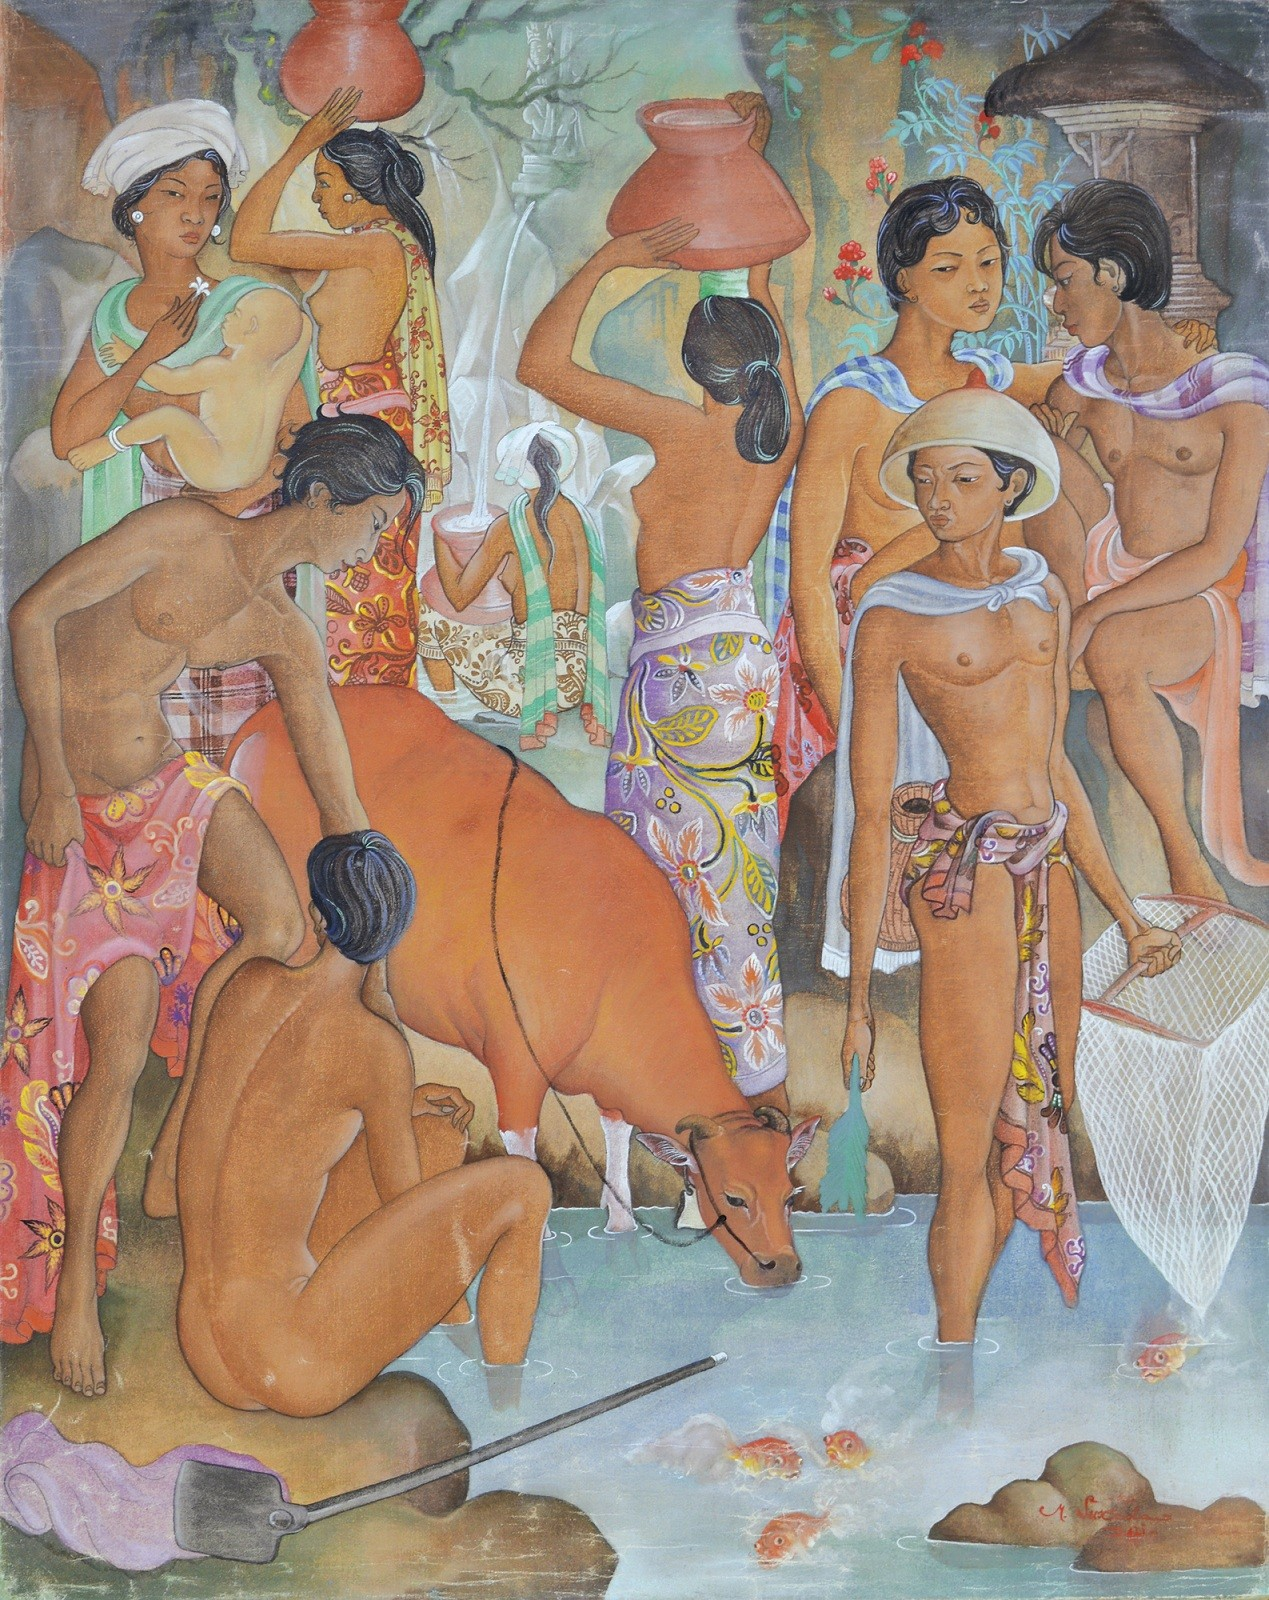 Lot # 580 'Bali Life' by Made Sukada.